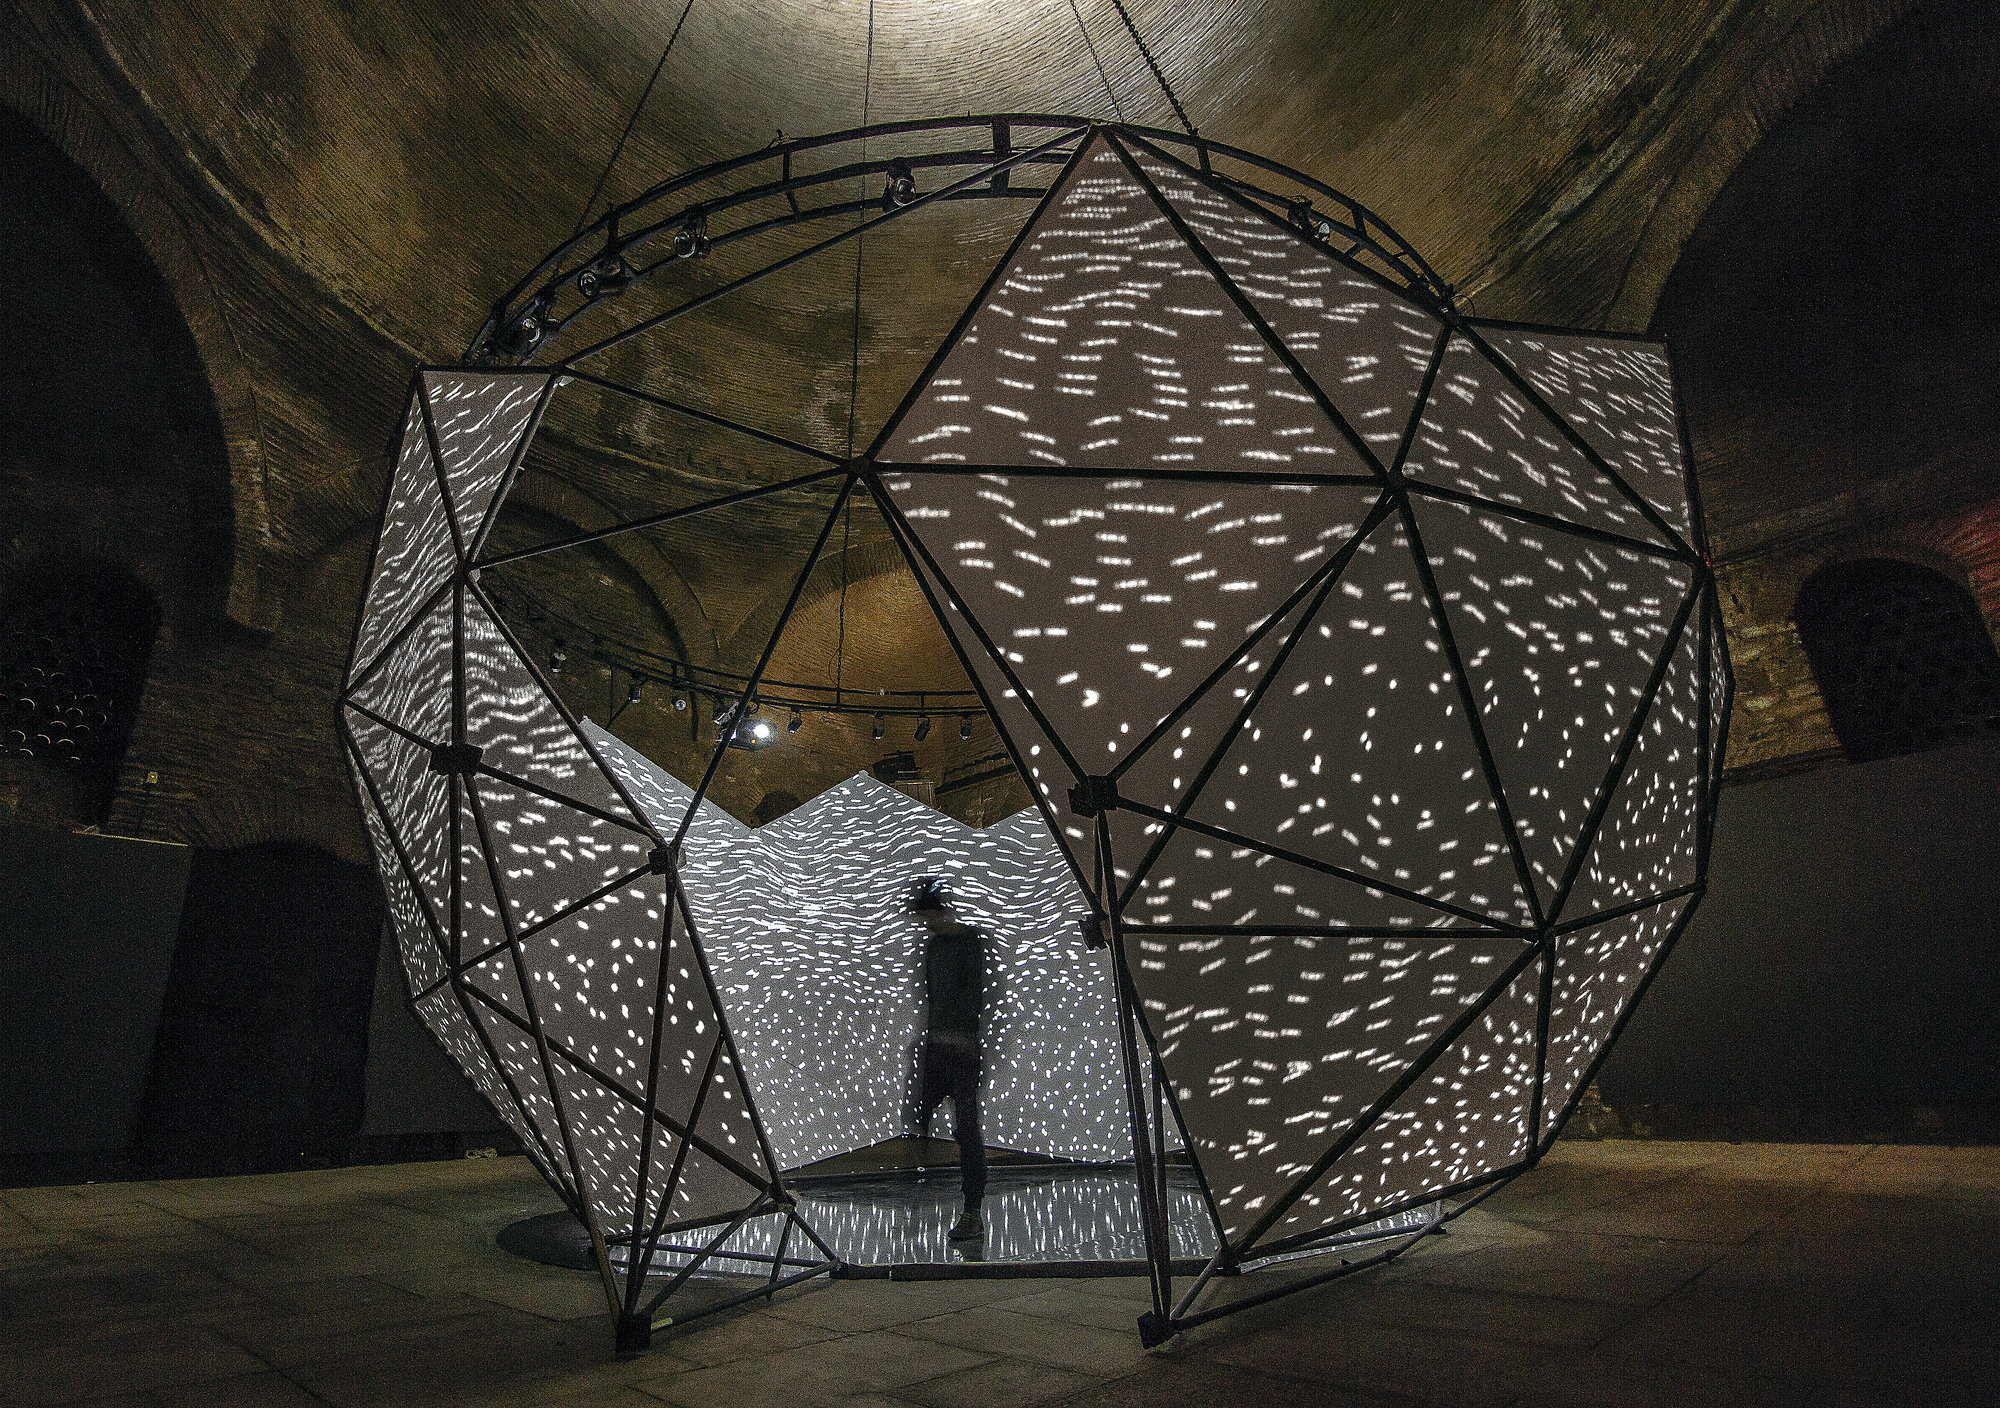 NOHlab and Buşra Tunç Create Immersive Installation Based on Centuries-Old Architecture